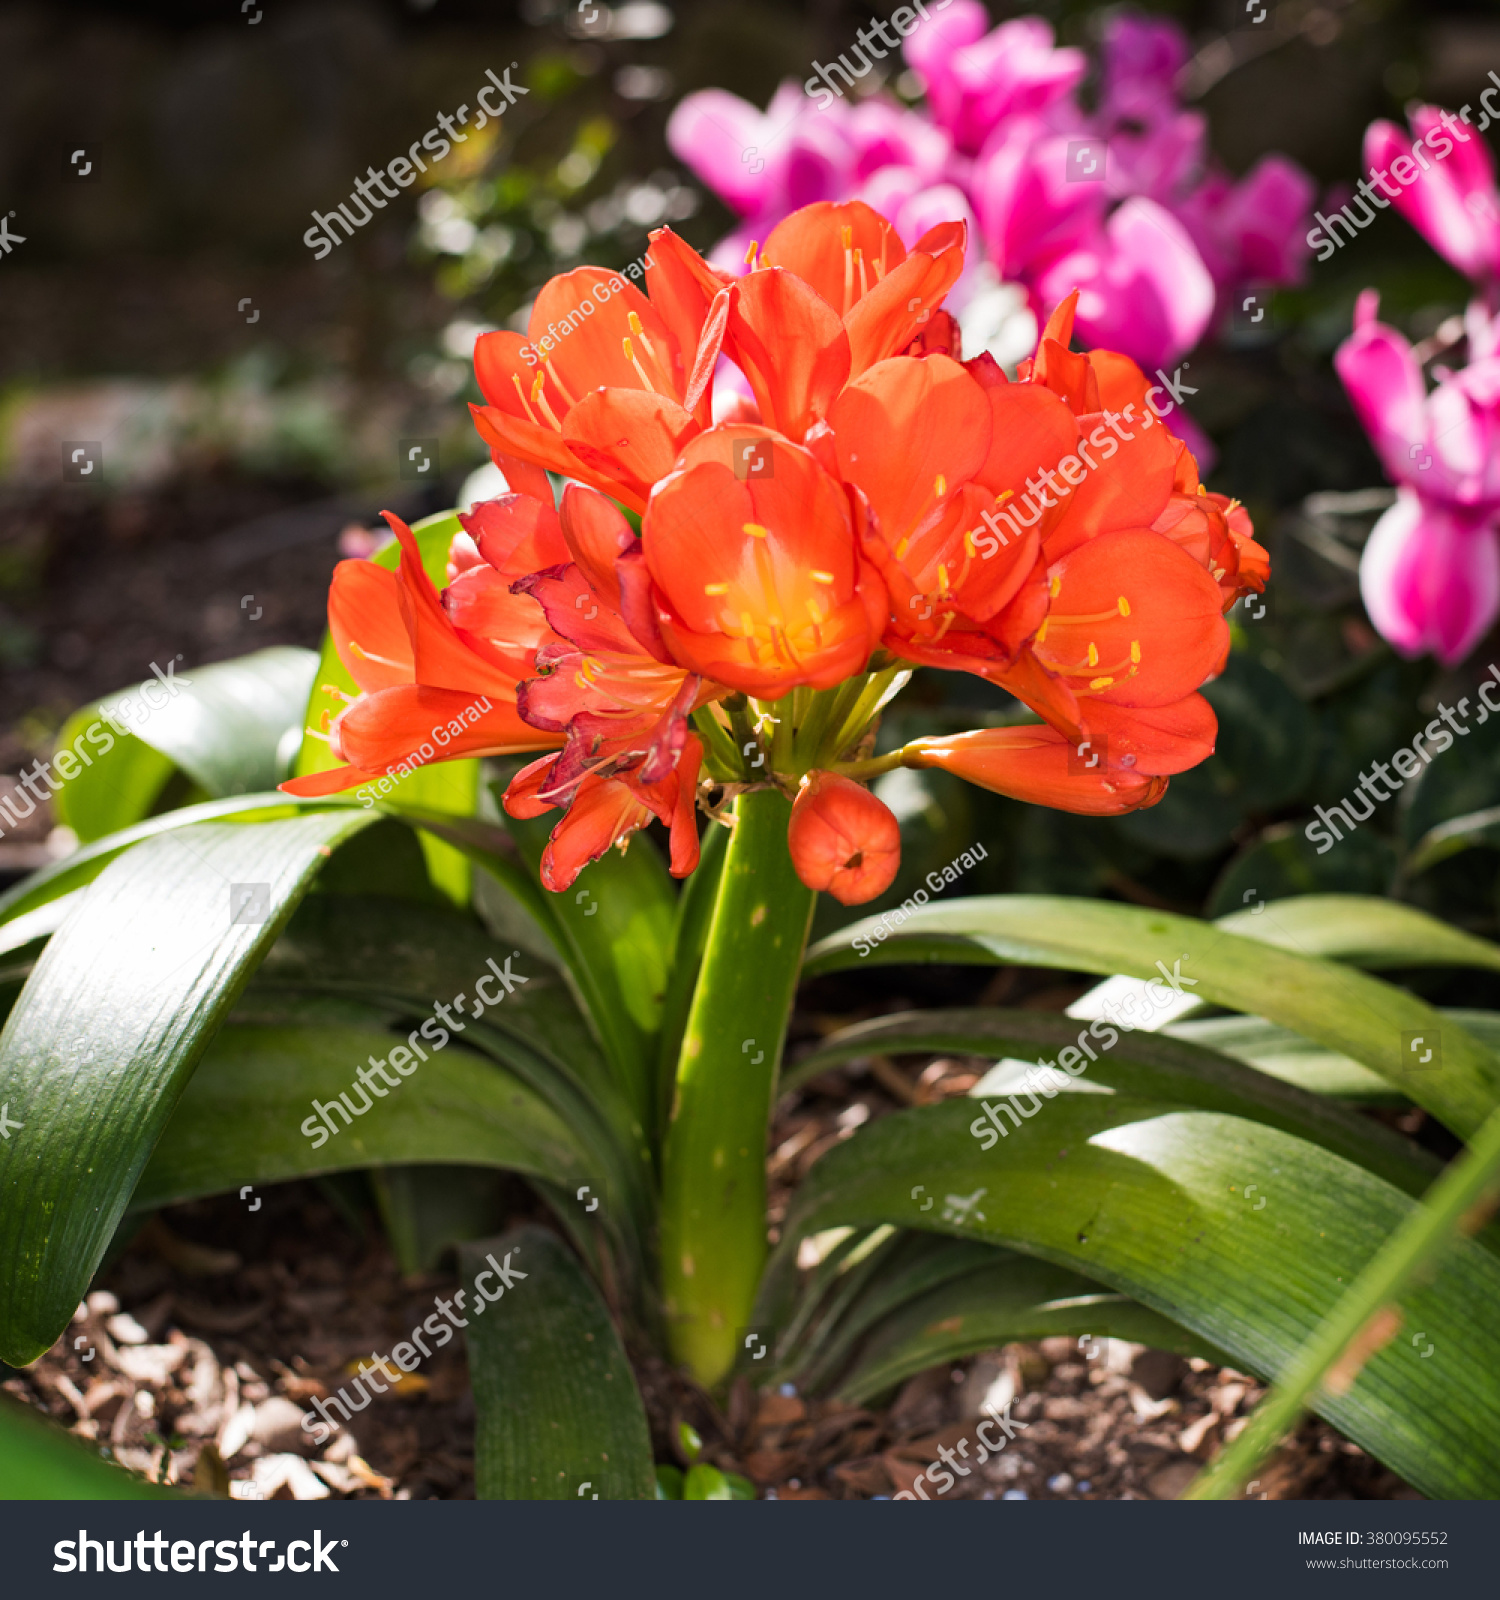 Clivia miniata flowers lily flower bed stock photo edit now clivia miniata flowers of lily in a flower bed with pink flowers in the background izmirmasajfo